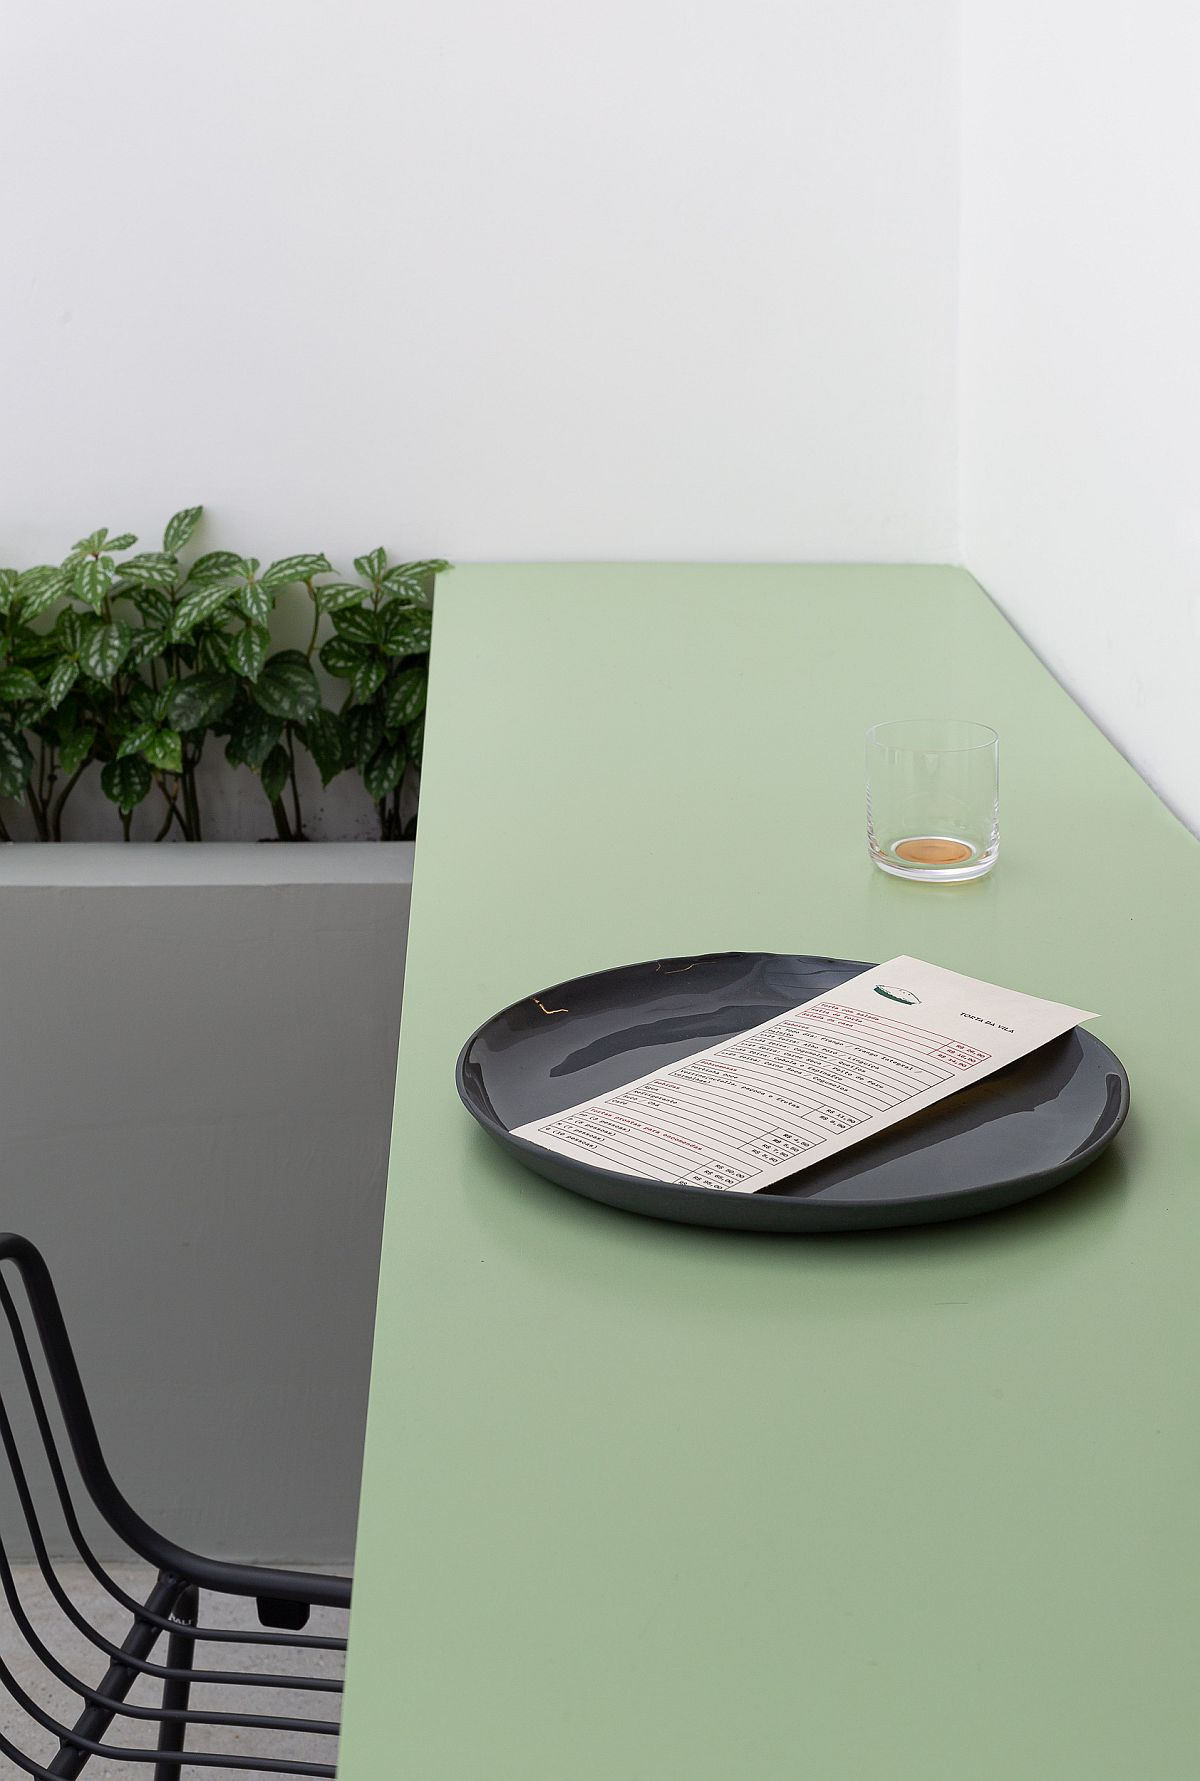 Minimal table and seats inside the restaurant save space with ease